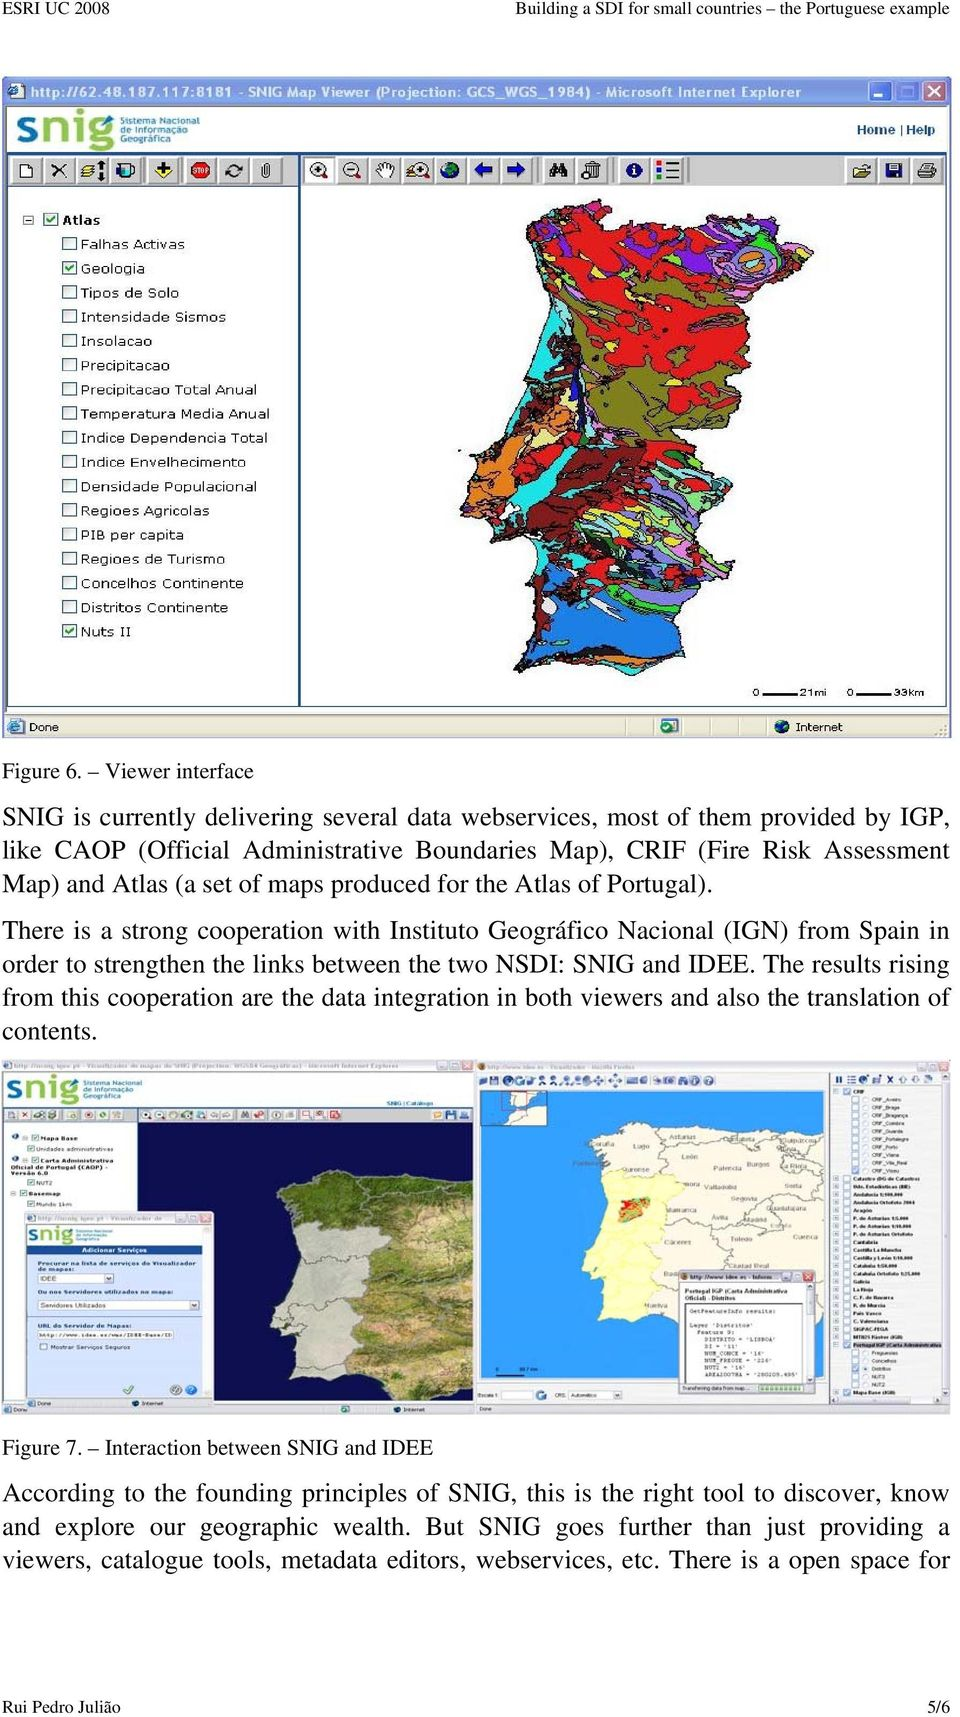 set of maps produced for the Atlas of Portugal). There is a strong cooperation with Instituto Geográfico Nacional (IGN) from Spain in order to strengthen the links between the two NSDI: SNIG and IDEE.